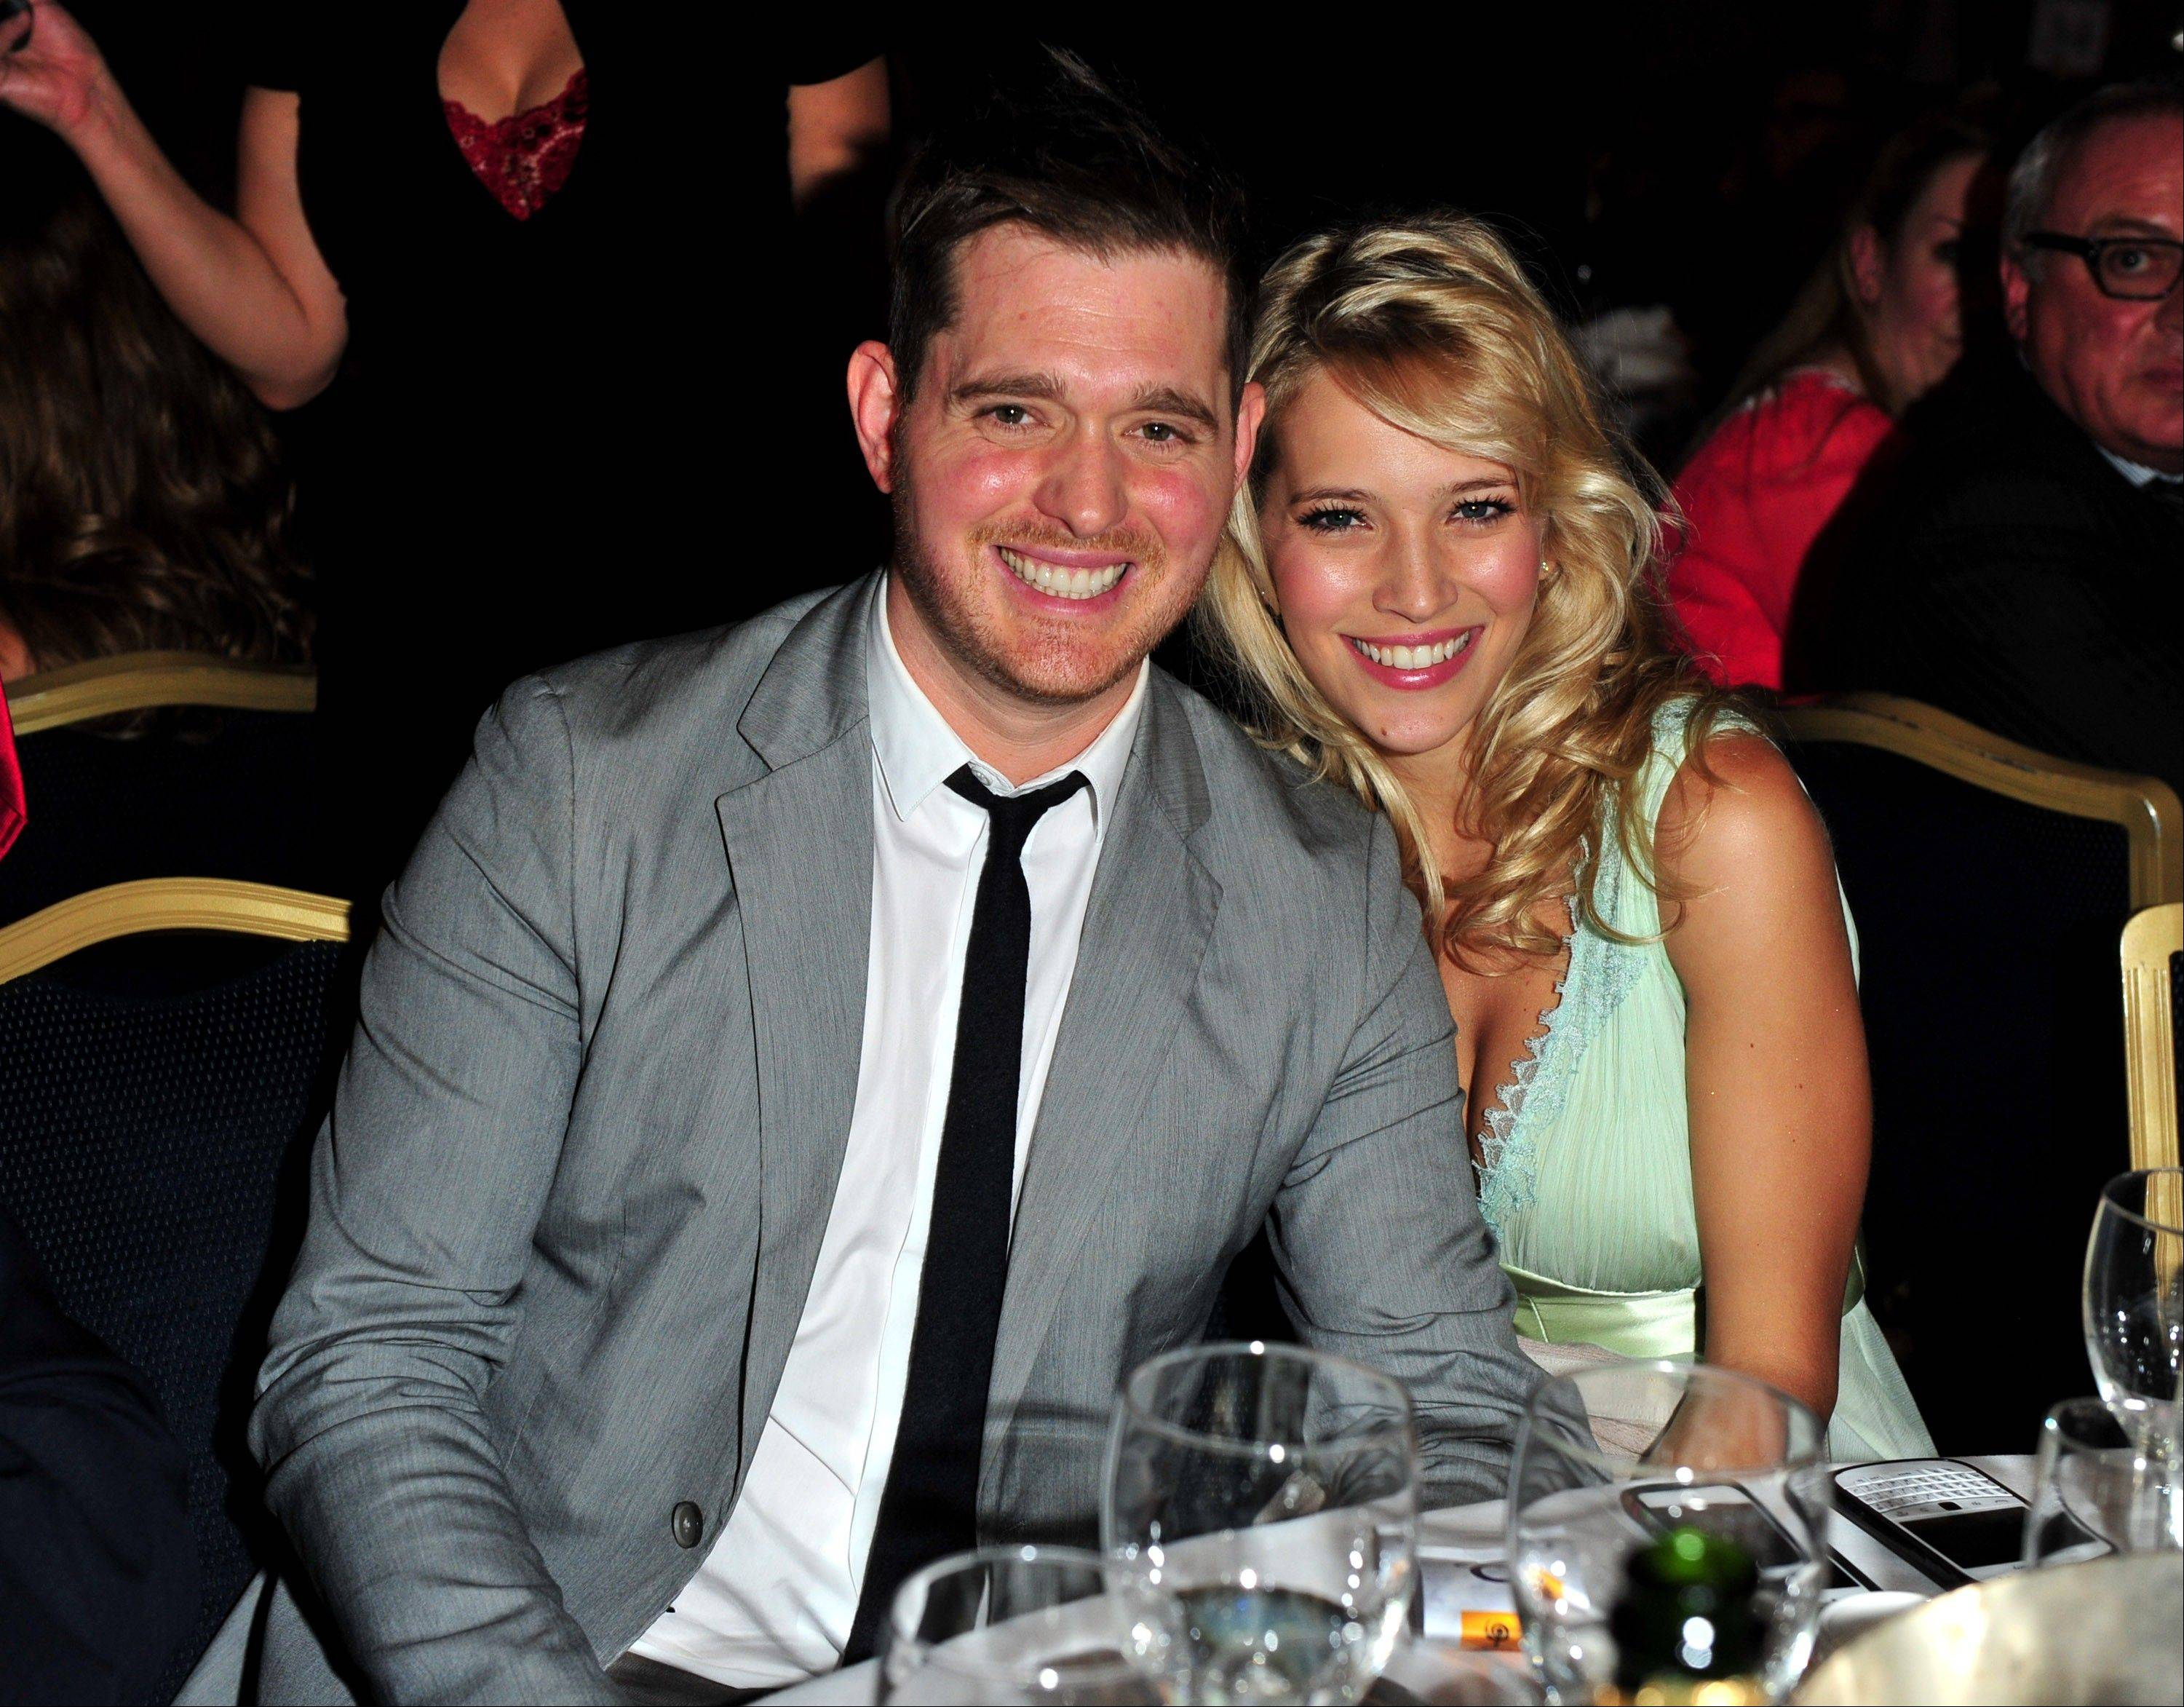 Singer Michael Buble and his wife, Argentine TV actress Luisana Lopilato, are their expecting their first child.